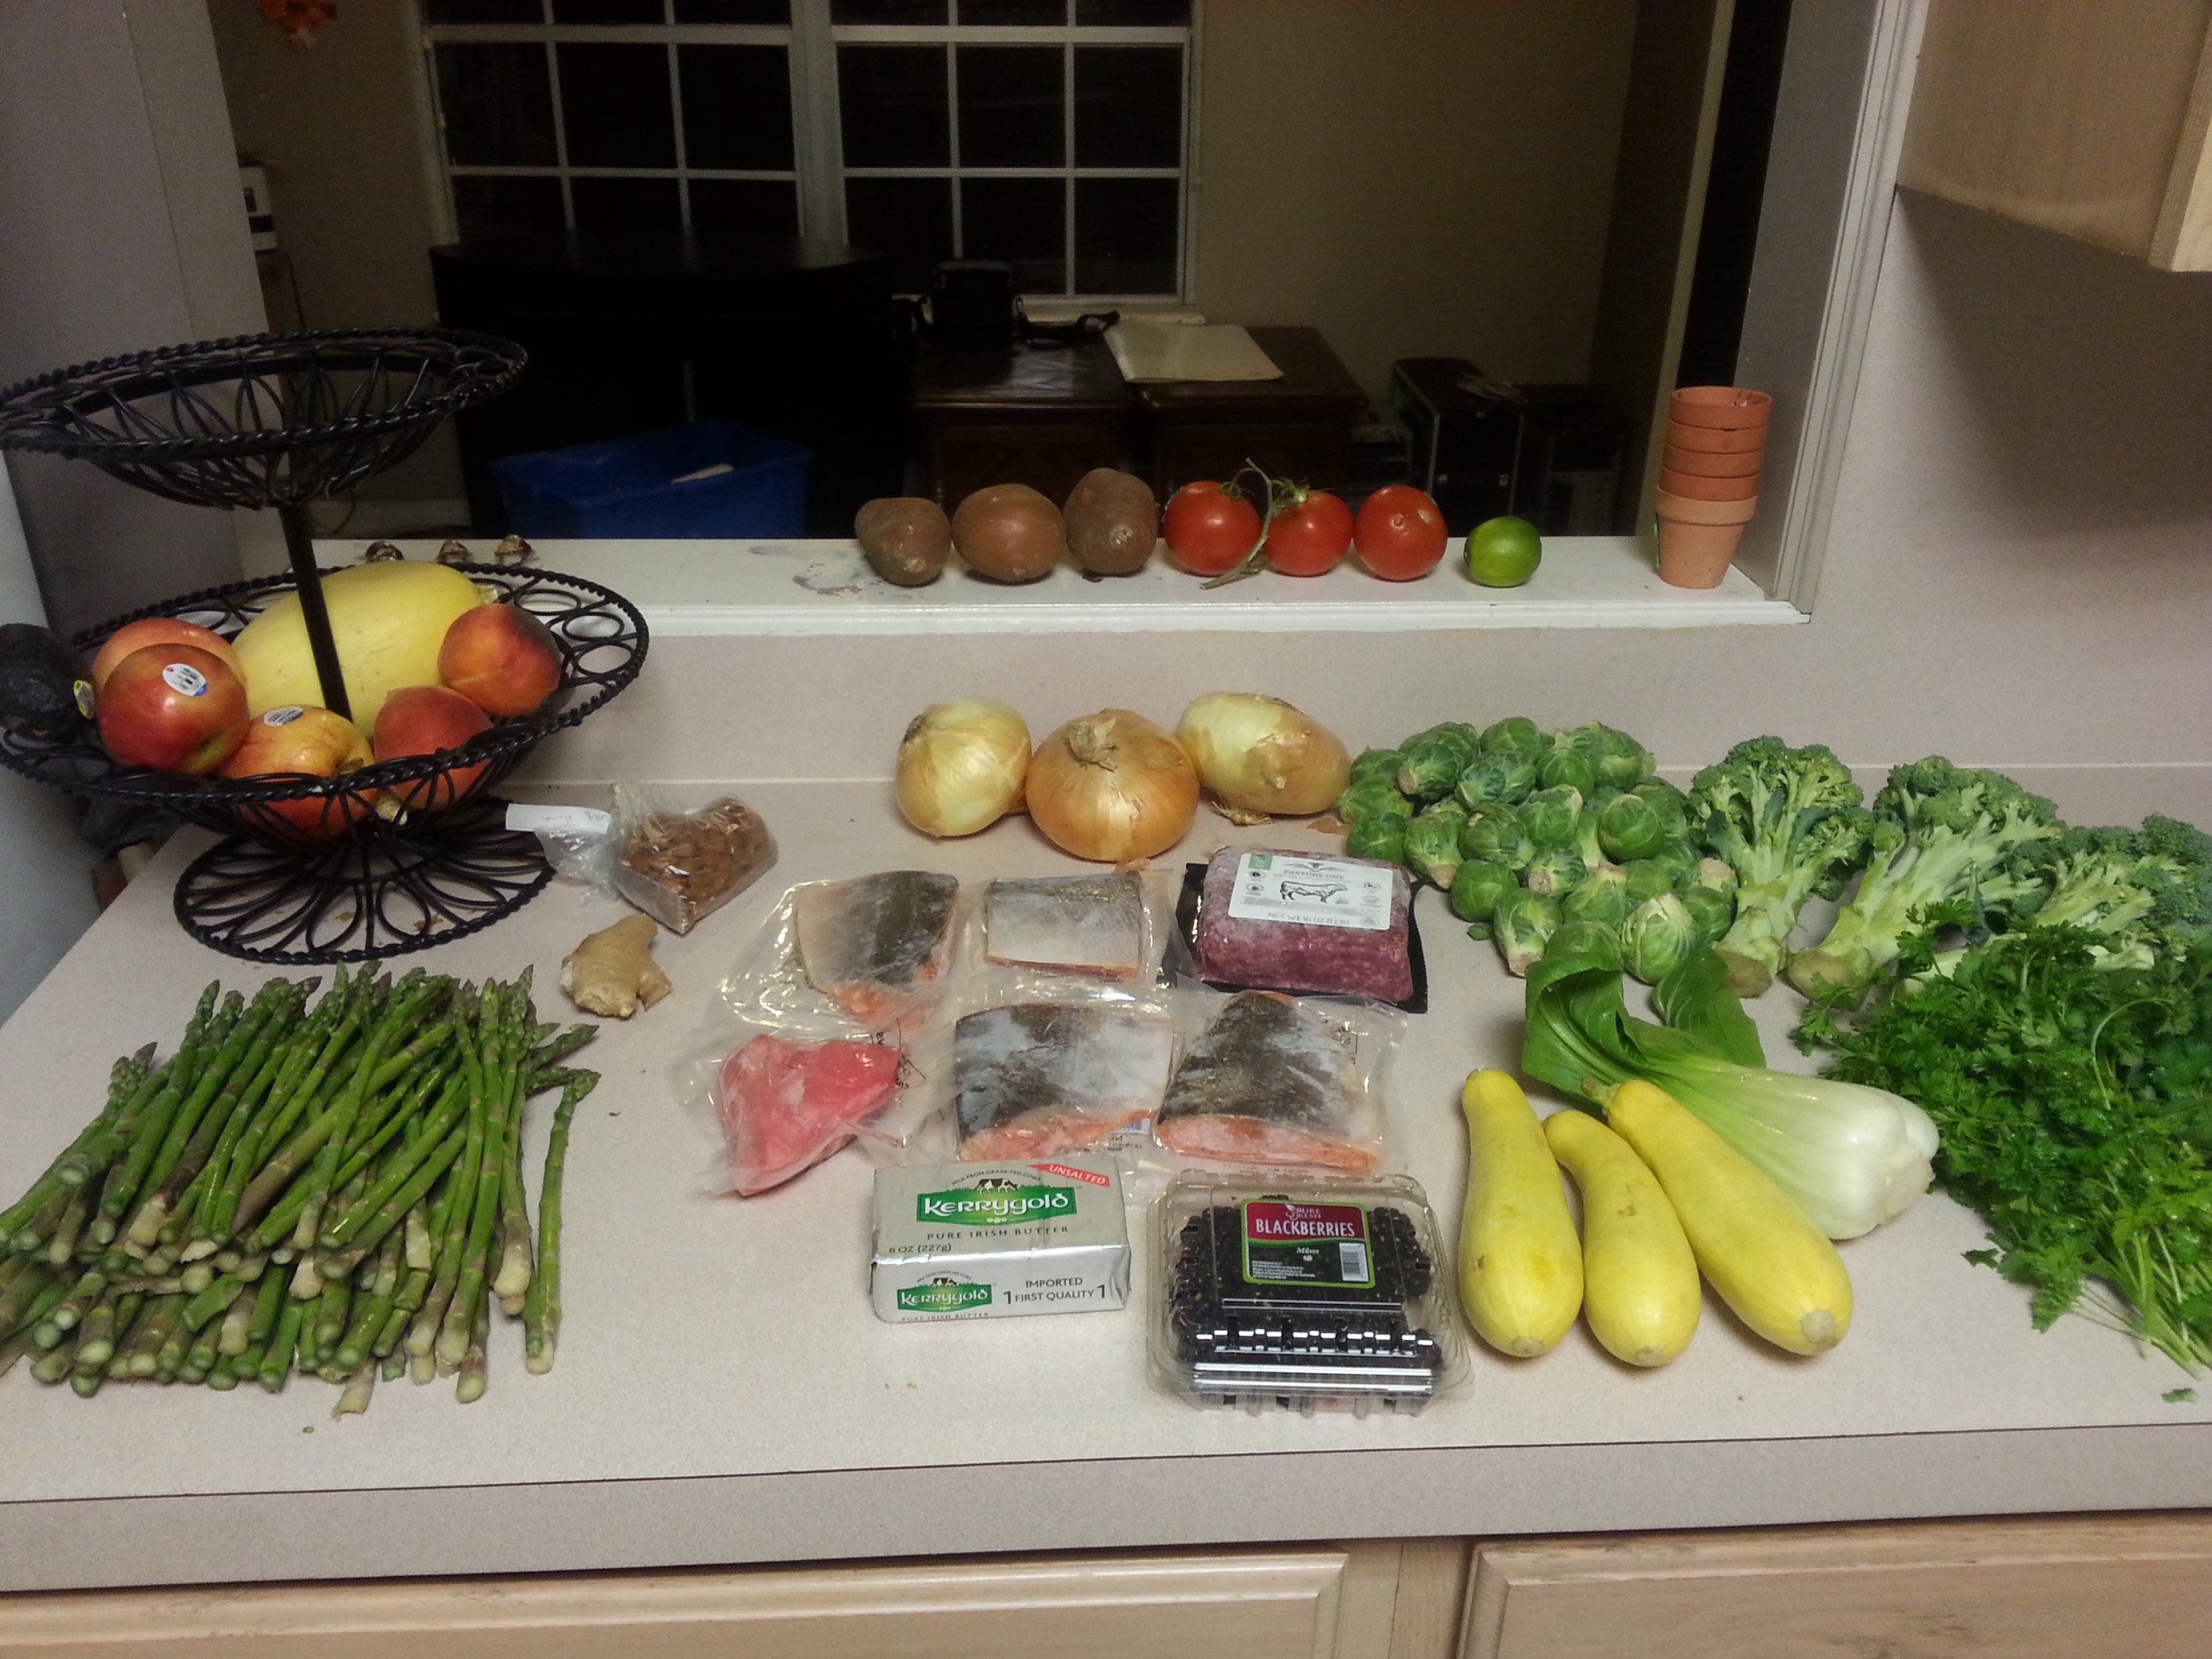 Bulletproof — Putting fresh groceries and produce away at home